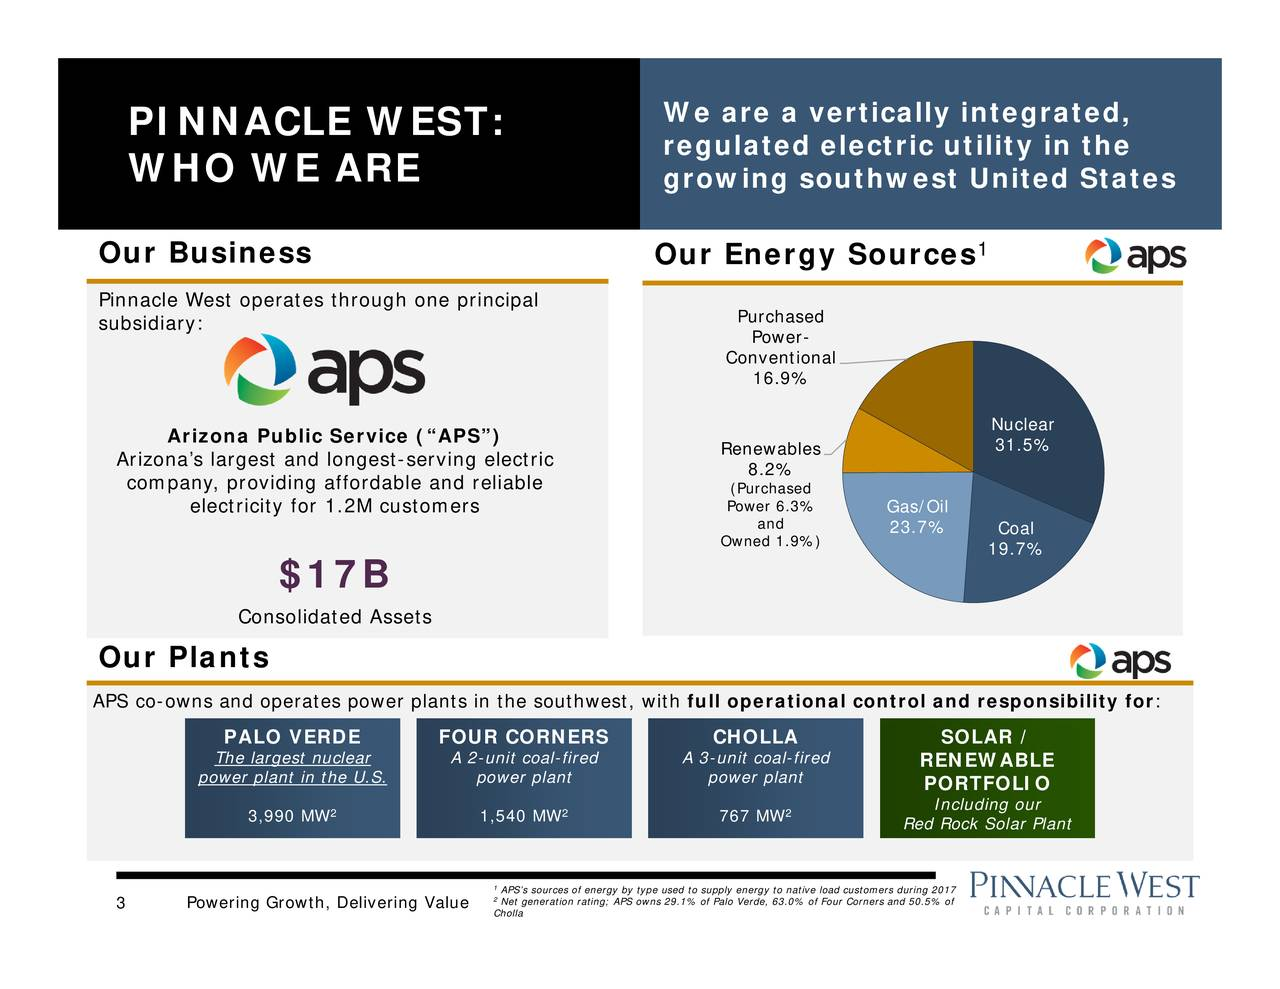 """31.5% Coal 1 Nuclear 19.7% SOLLAR / RENNEWAABLLEOr Rd Rok SoarPant Gas/Oil 2 Power-.9% 8.2%and PurcConventiRenewablOwned 1.9%) 767MW CHOpowerplnt full A3-untcoafredontrol and responsibility for We reagrelatenegrtloauthiwietsigtrn itdd,hetates Our Energy Sources 2 12Chollaegy;bAnsssop9t.oernaetrin powerplntWW A2-untcoafred ants in the southwest, with 2 $17B 3990MWW Consolidated Assets PATheargstnucear electricity for 1.2M customersnt ntheUS. Powering Growth, Delivering Value Arizona Public Service (""""APS"""") PIW NN H AO CWLE EW AE RSET: Arizona's largest and longest-serving electric Ou riBuusdinee:oserates through onOricAPS co-owns and operates power pl"""